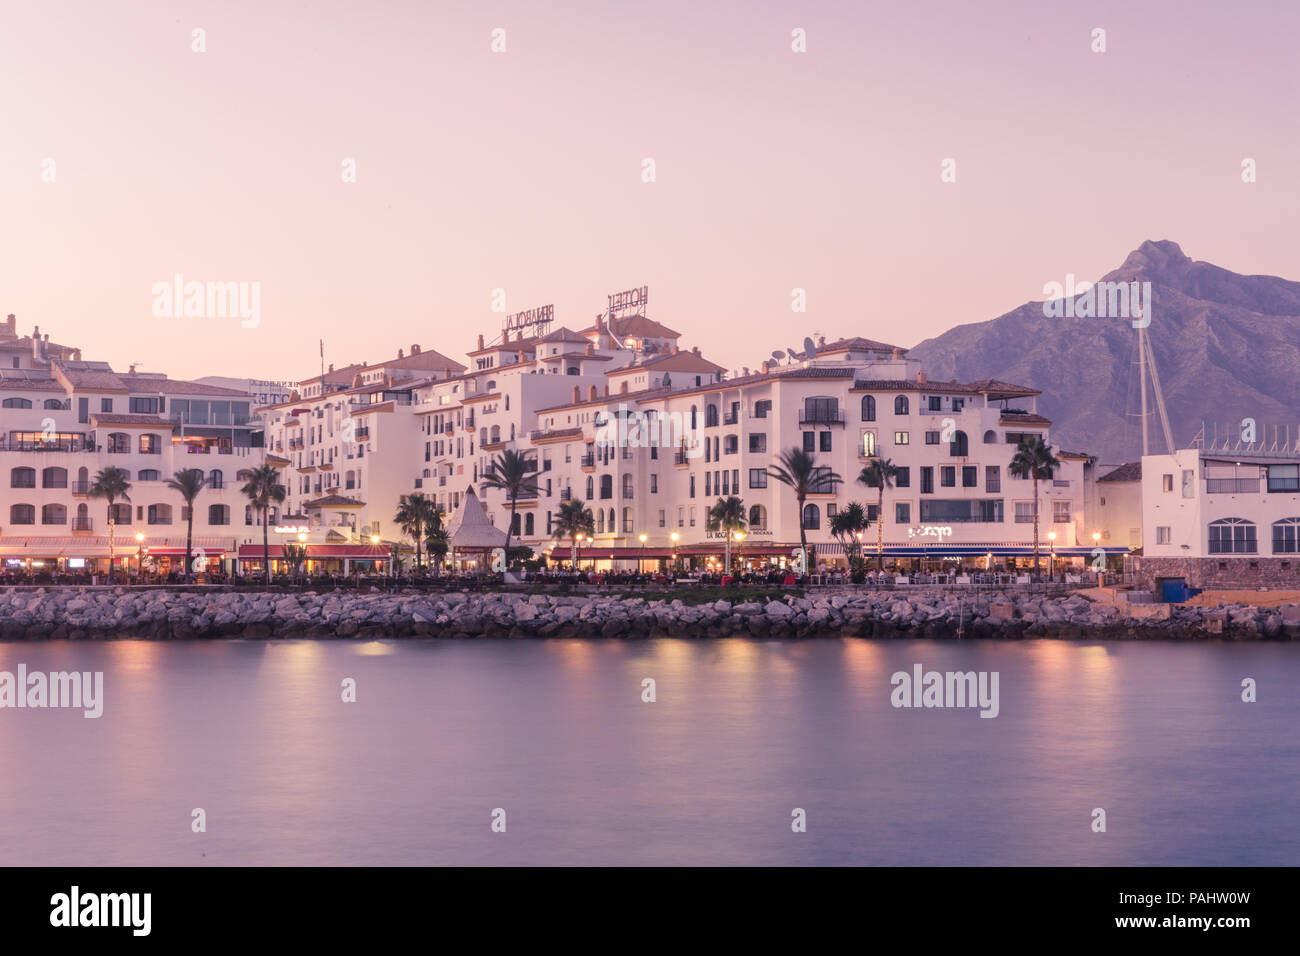 The Yacht Harbour of Puerto Banus, Andalucia, Spain on a hot summer evening. - Stock Image